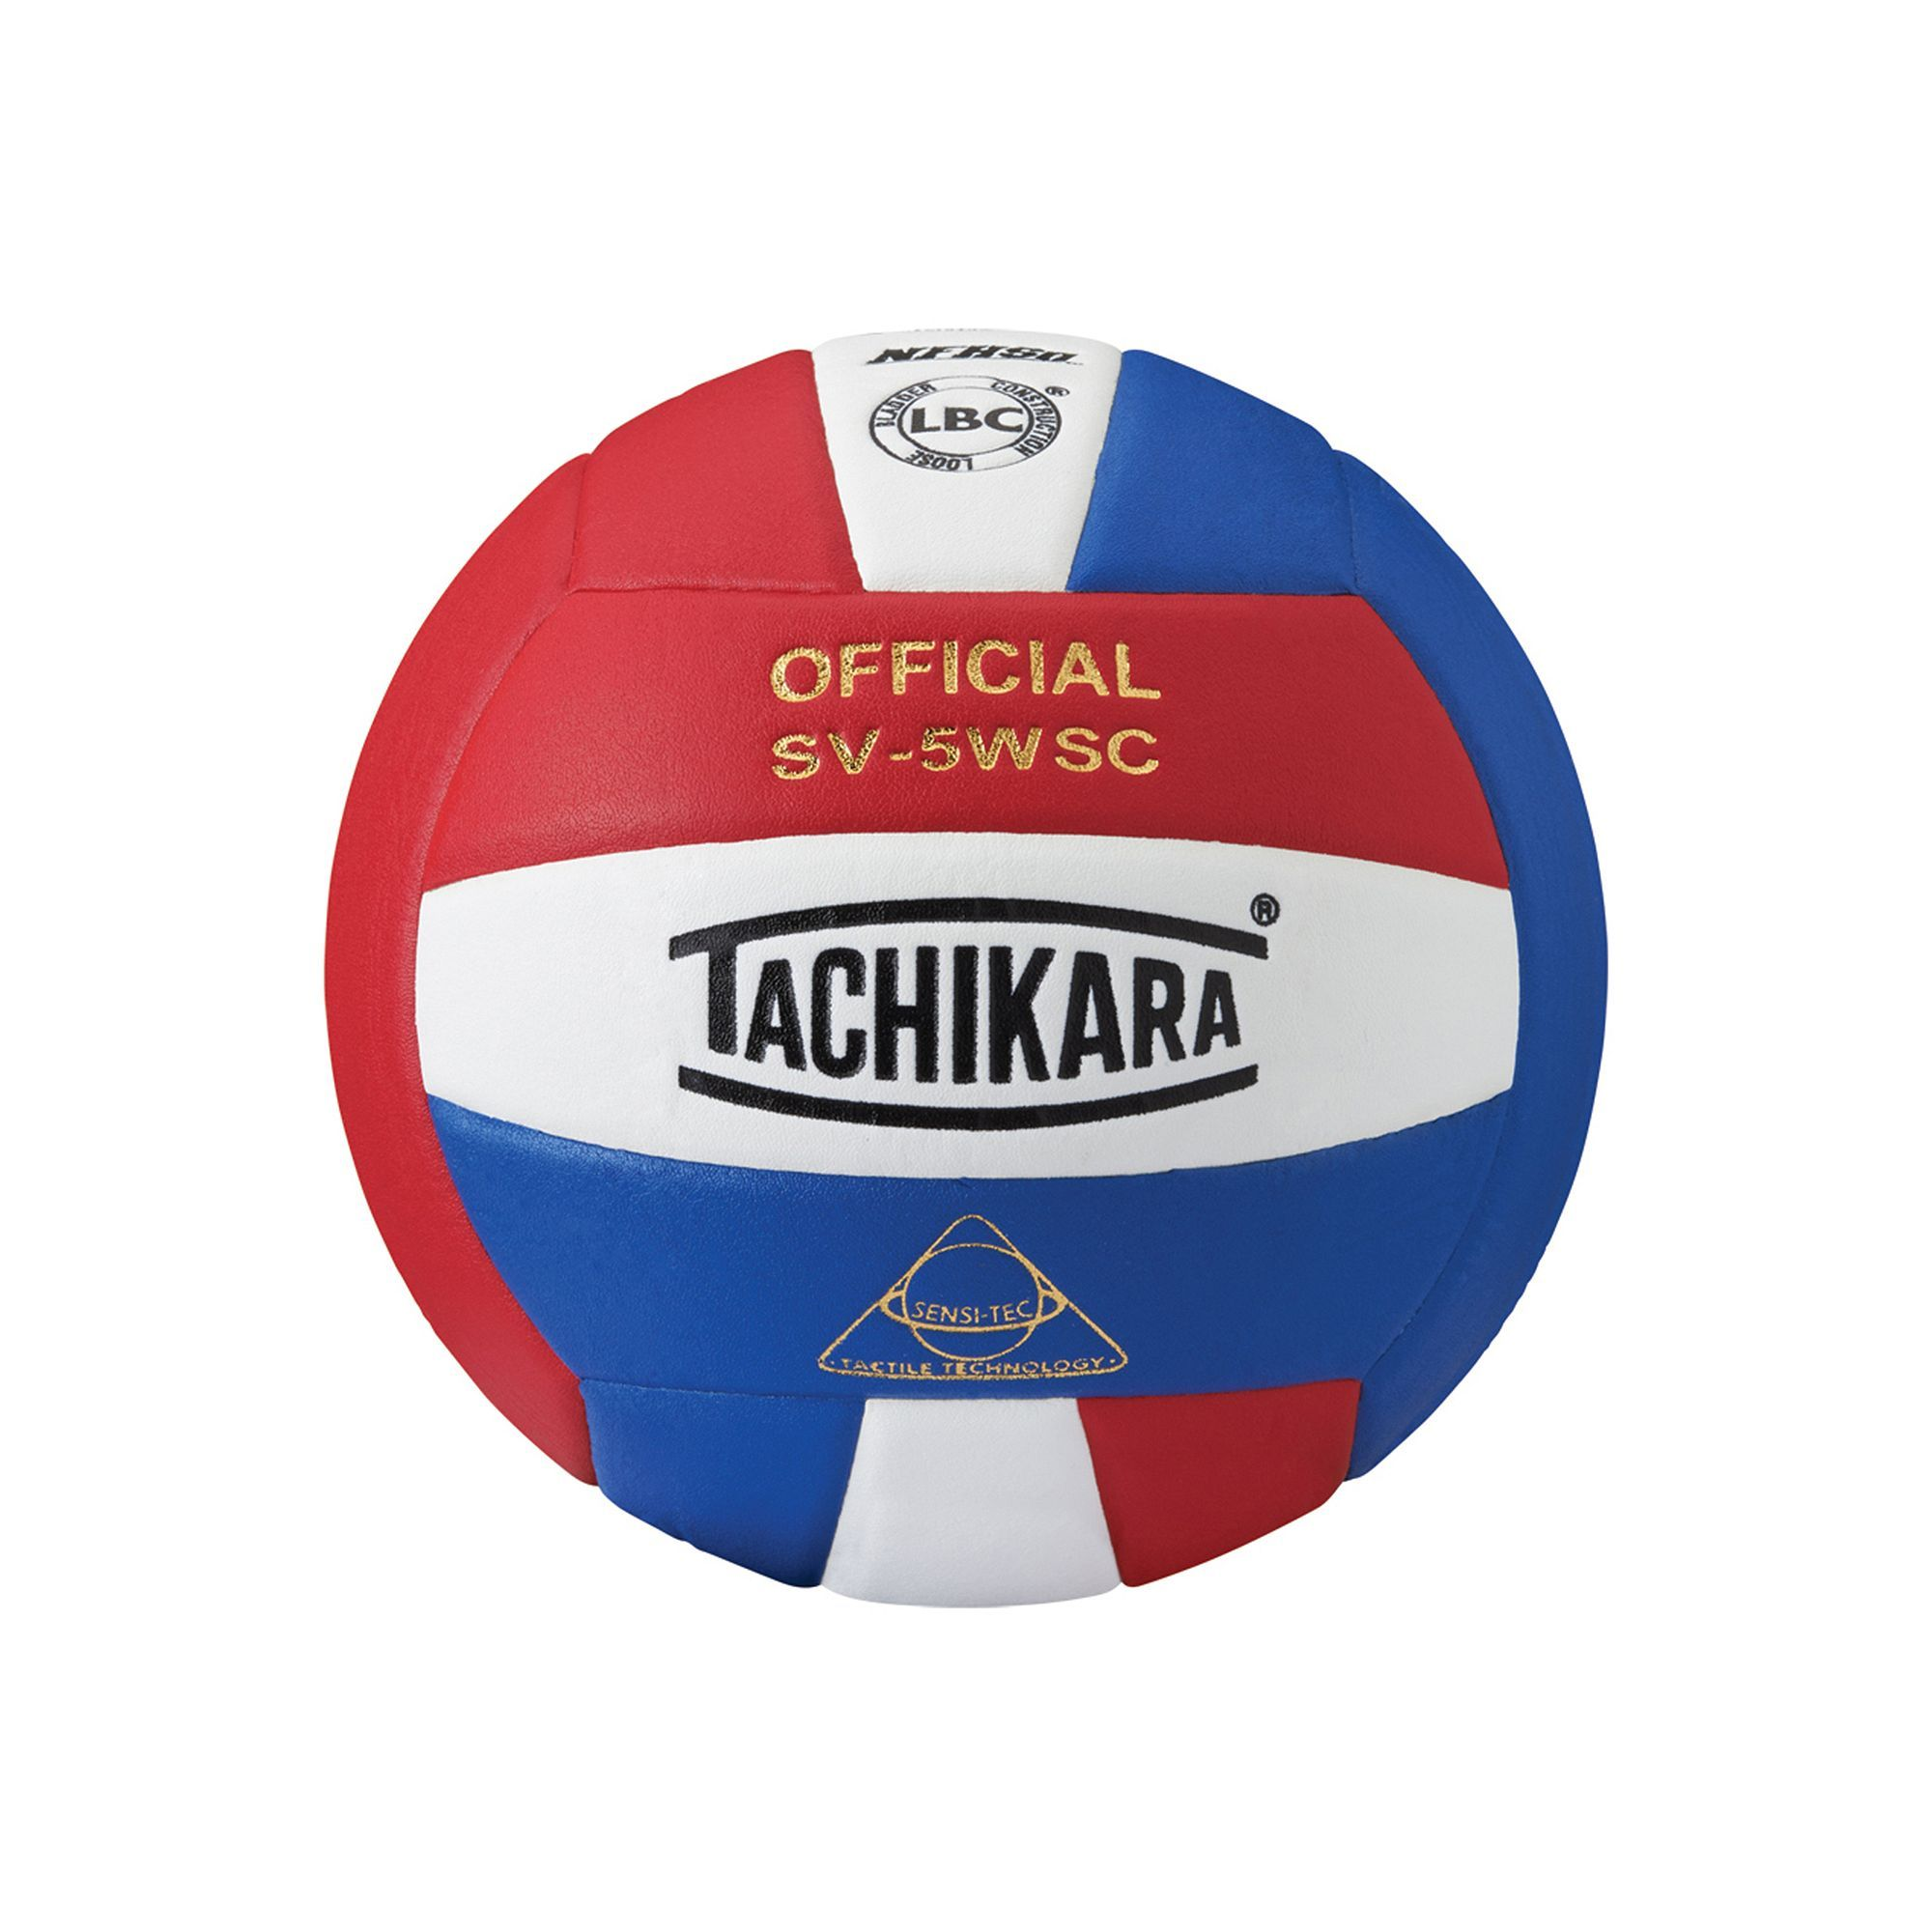 Tachikara Official Sv5wsc Microfiber Composite Leather Volleyball Volleyball Tachikara Volleyball Navy White